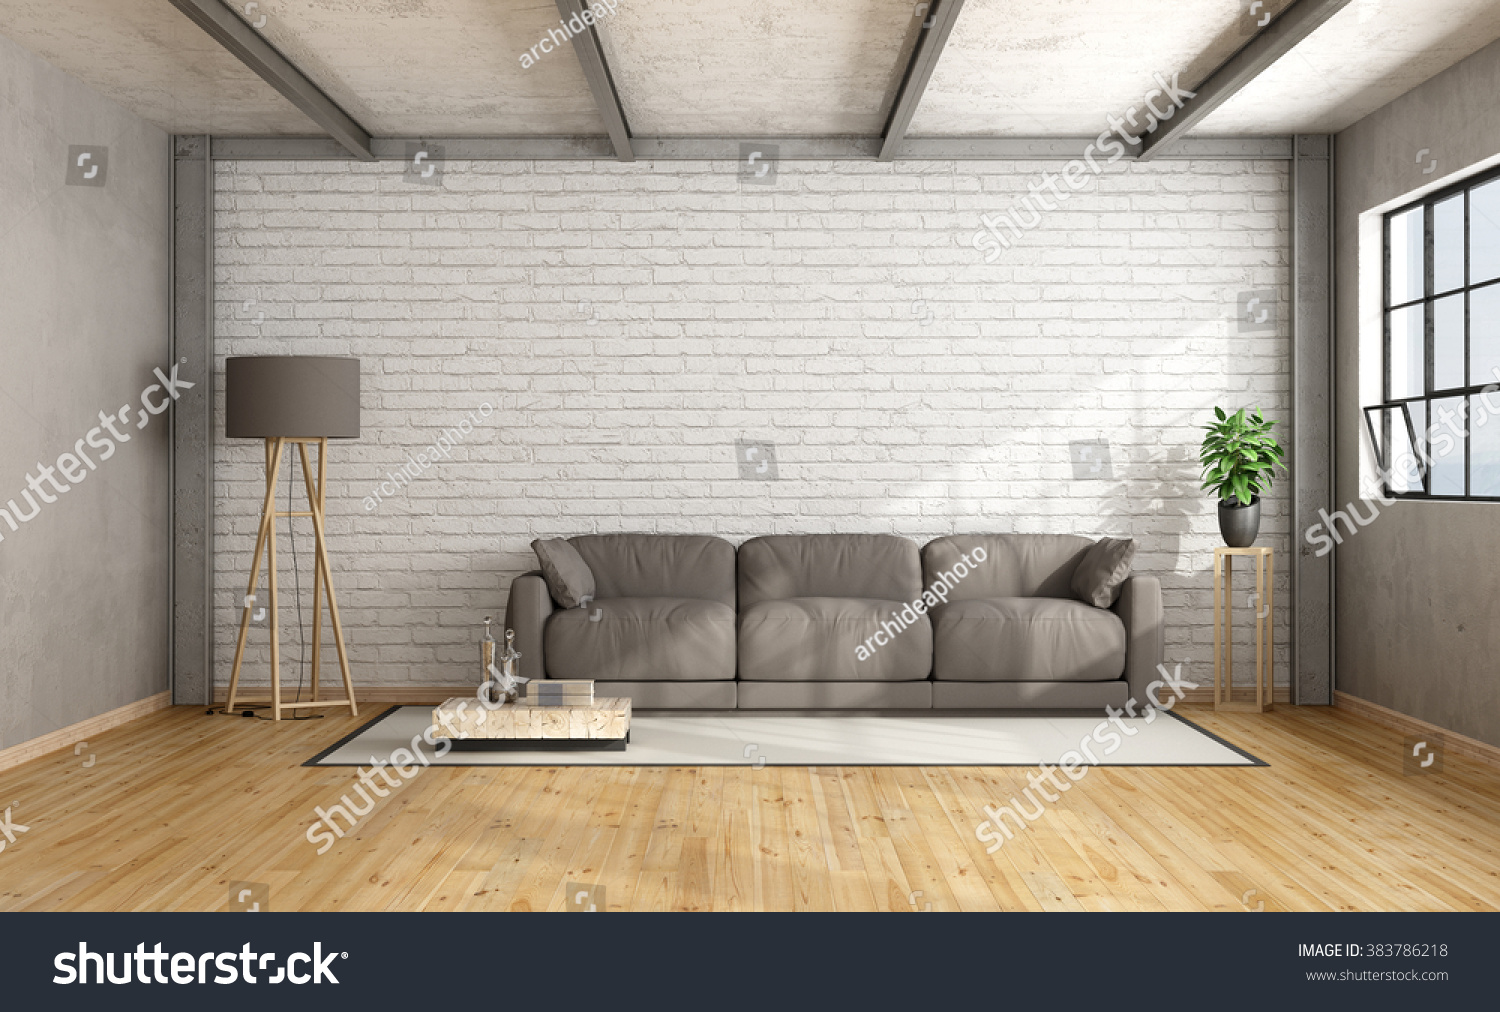 stock wall poster royalty compositionwhite picture composition free photo brick up white flowers mock interior